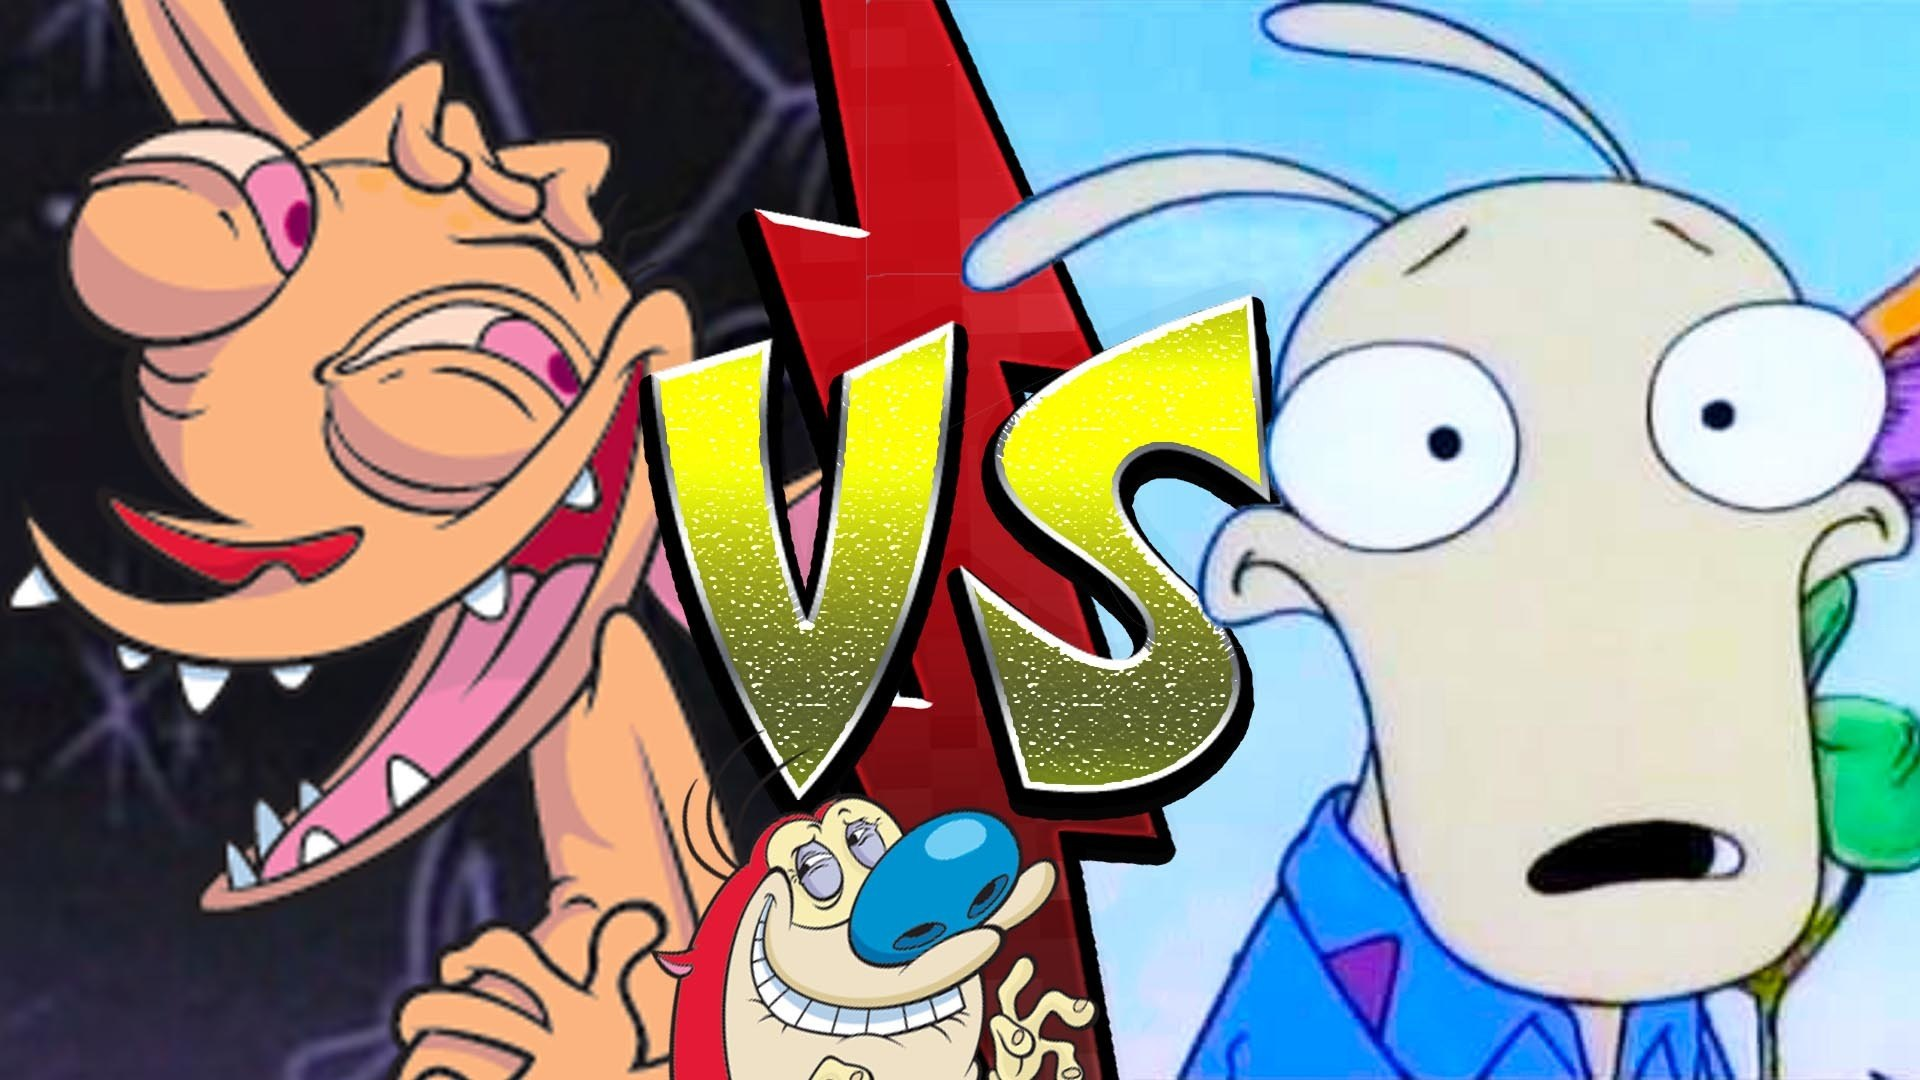 'Ren and Stimpy' vs. 'Rocko's Modern Life' | Nerdfight